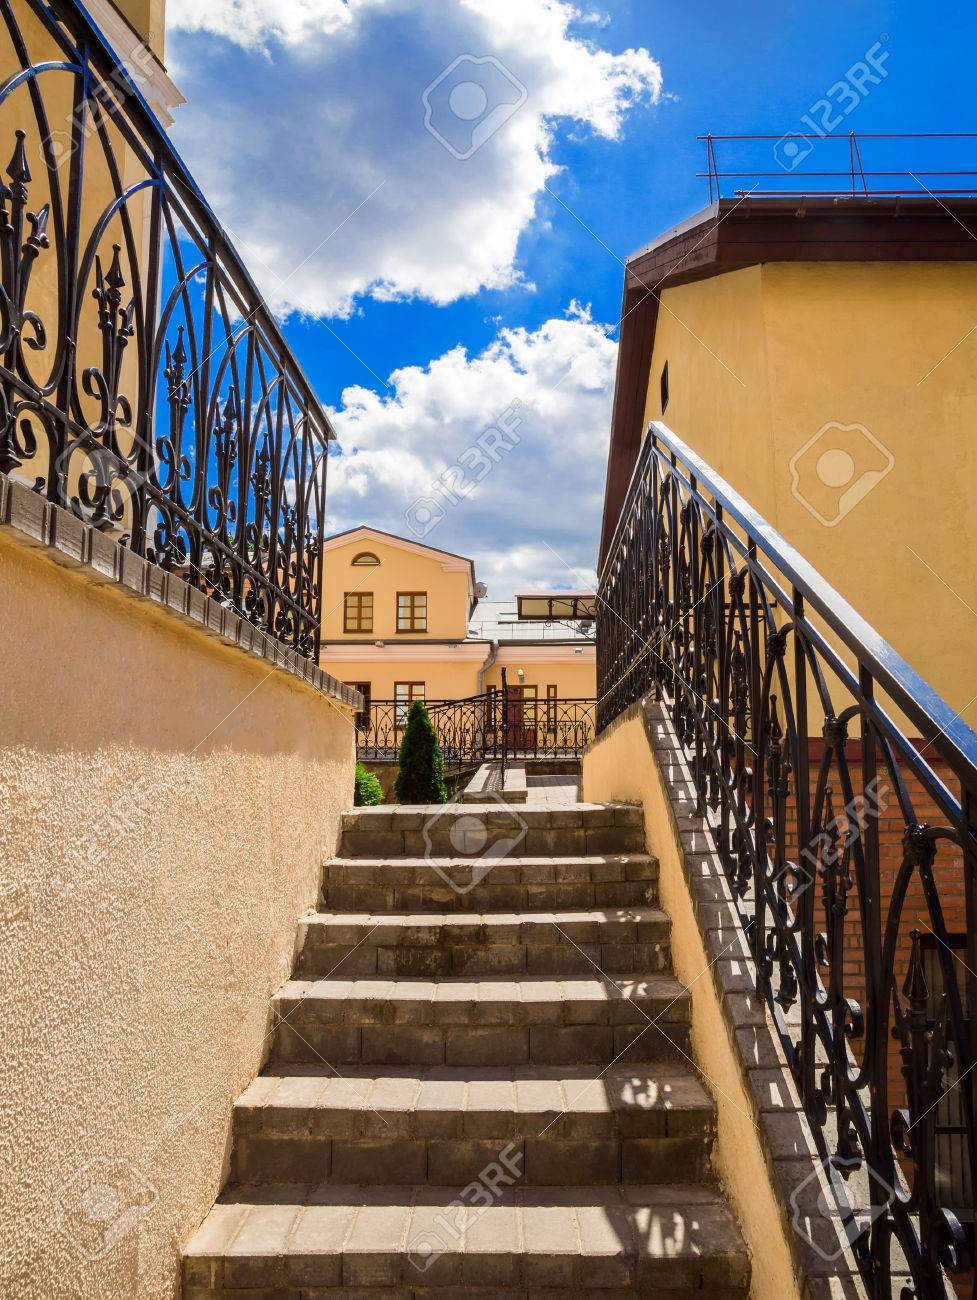 Old Stairs Of Concrete Outdoors Black Steel Railing With A Yellow Stock Photo Picture And Royalty Free Image Image 65823135